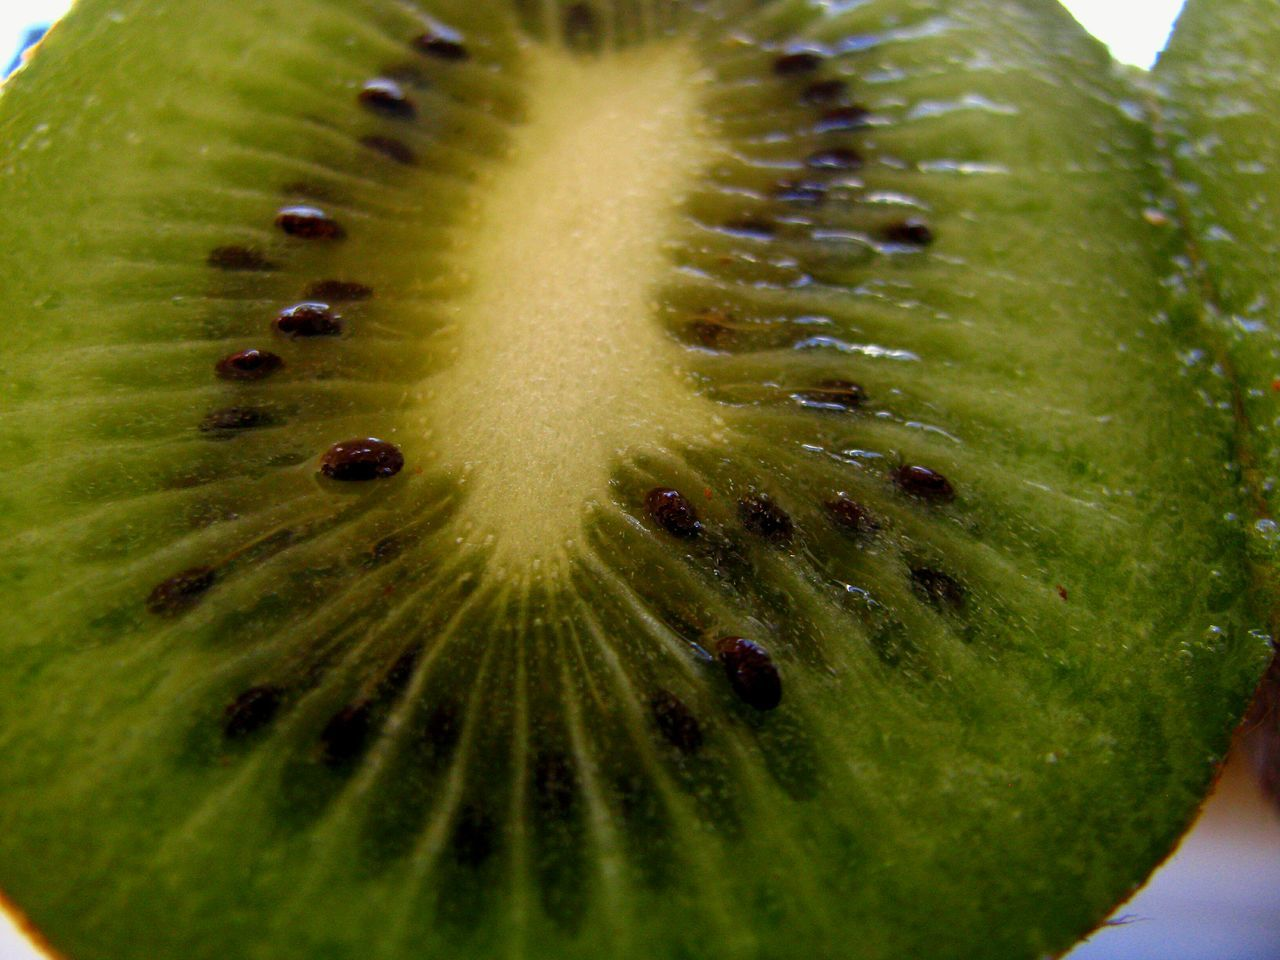 Kiwi Kiwi - Fruit Kiwis Fruit Food And Drink Healthy Eating Freshness Close-up Food Green Color Backgrounds Nature Food Photography My World Of Food Macro Fine Art White Background Still Life Delicious Nutritious Dietfood Diet & Fitness Diet Green Green Fruit